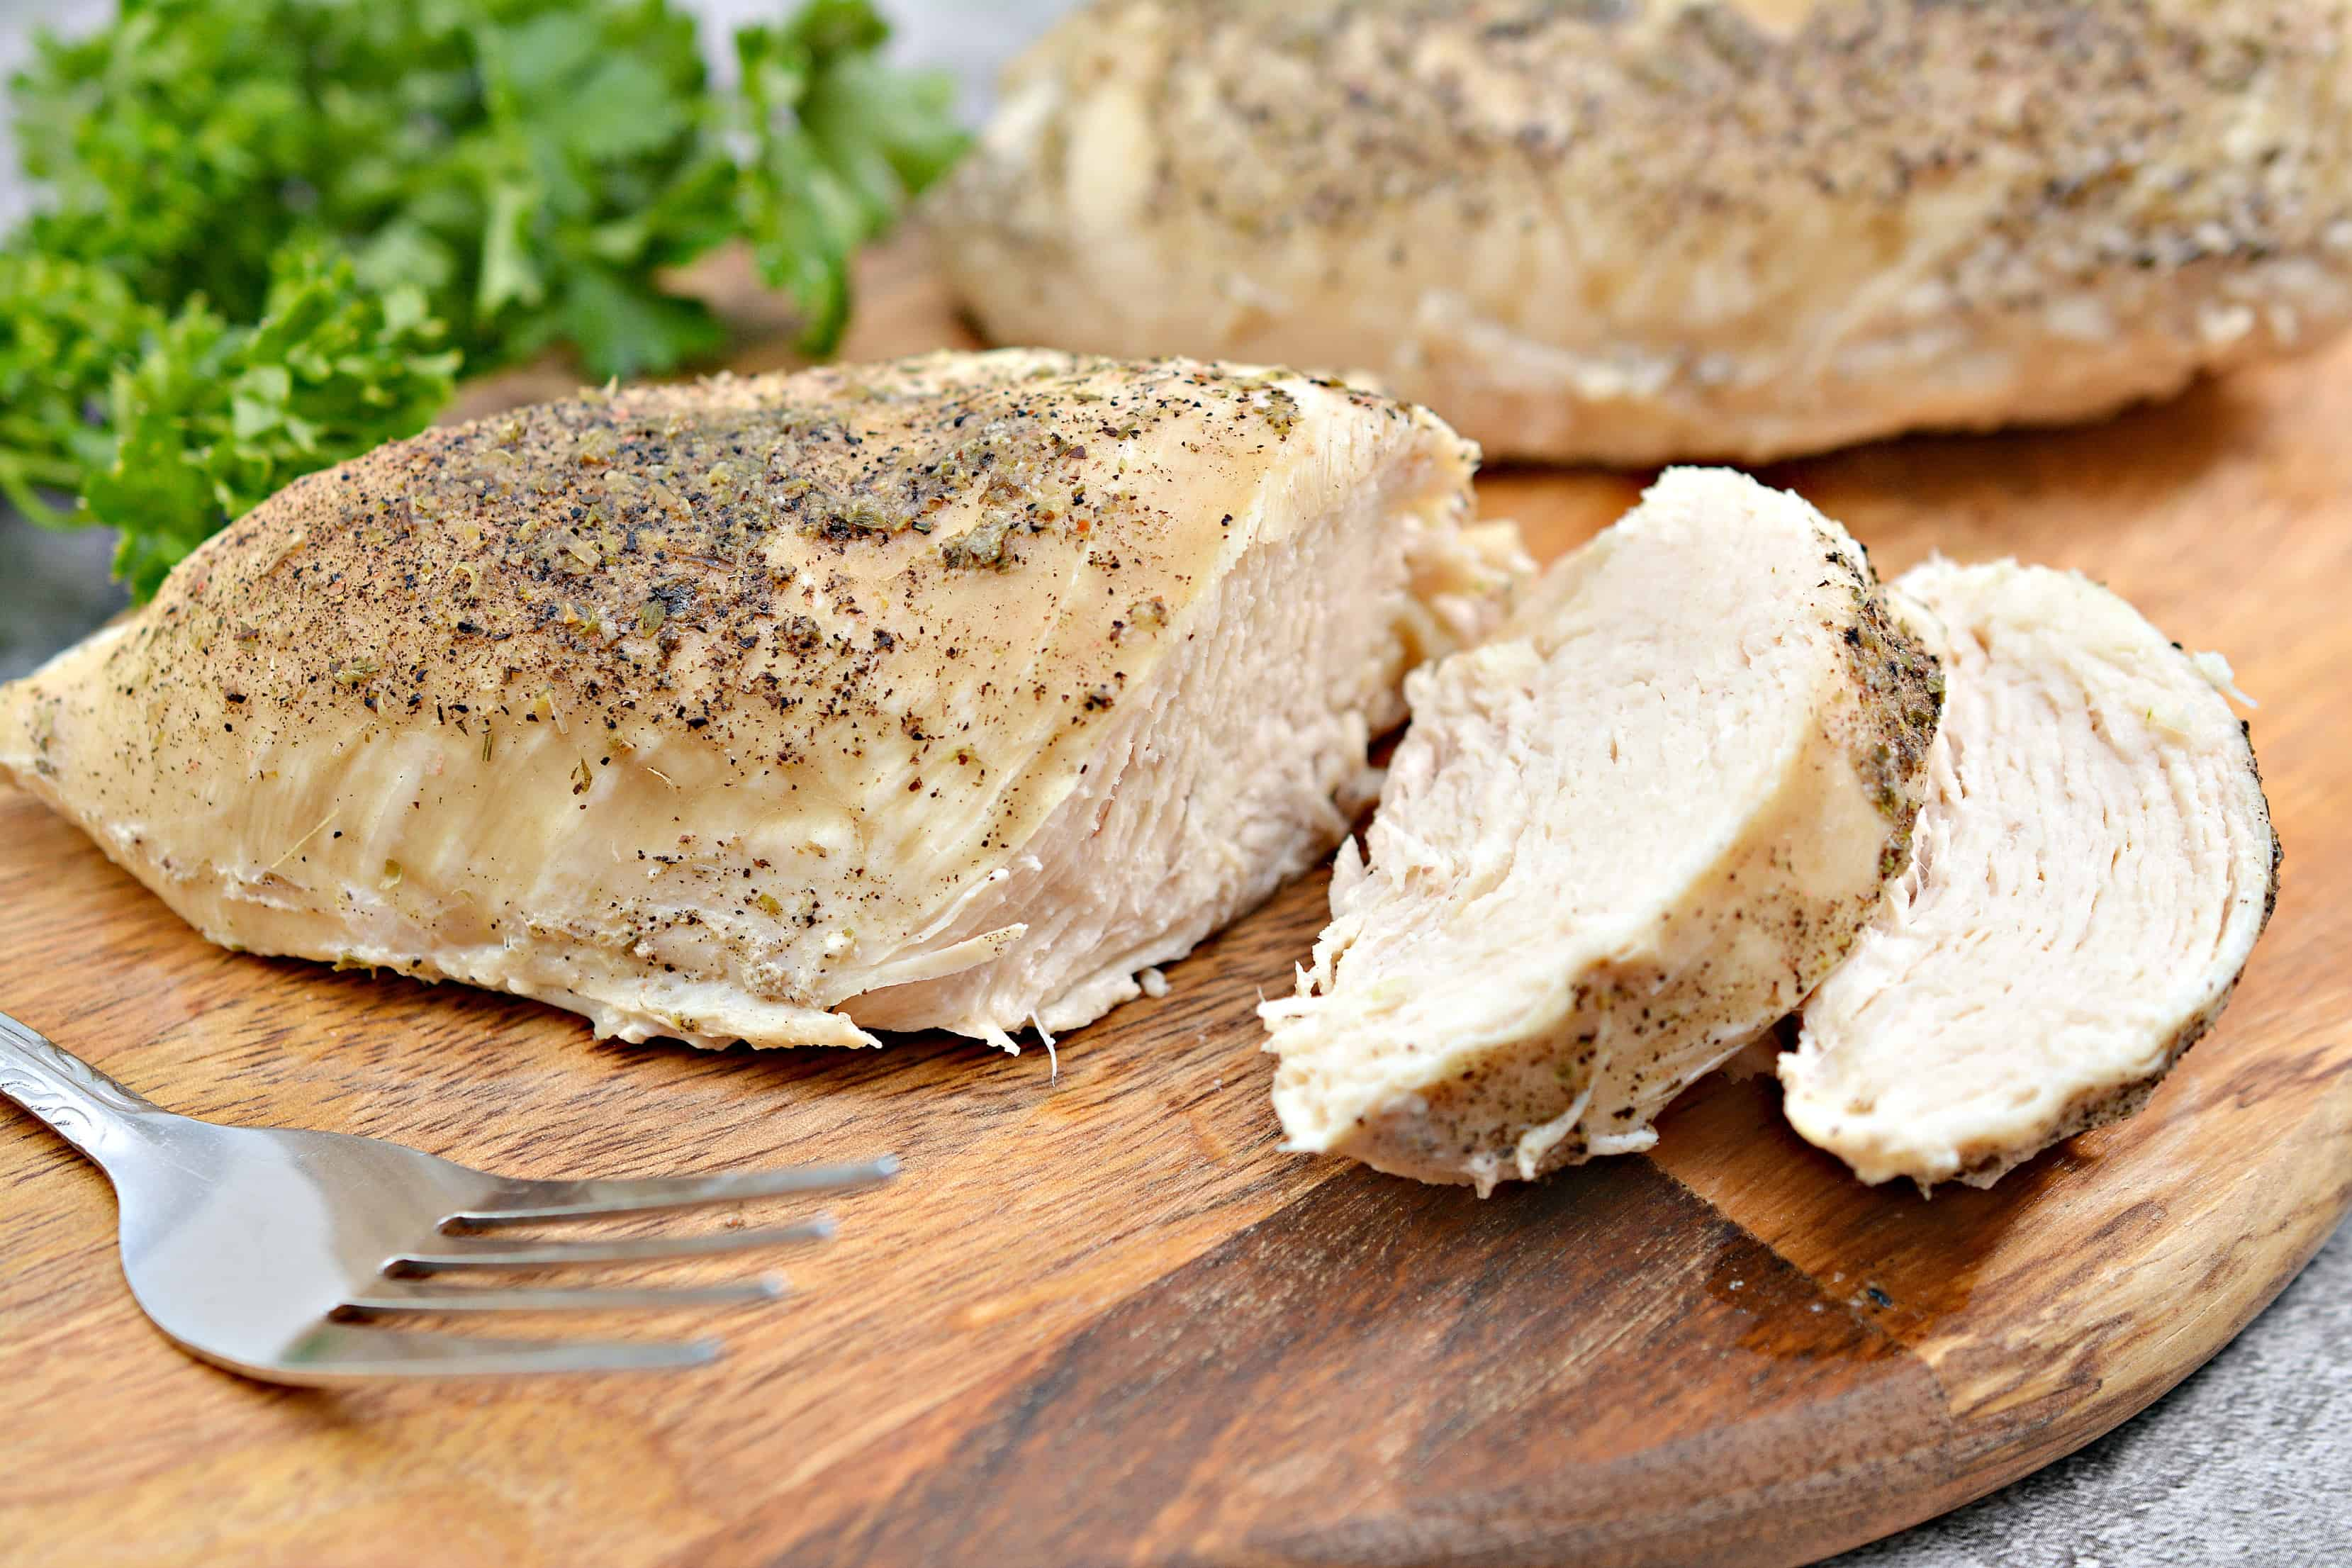 cooked chicken on the cutting board